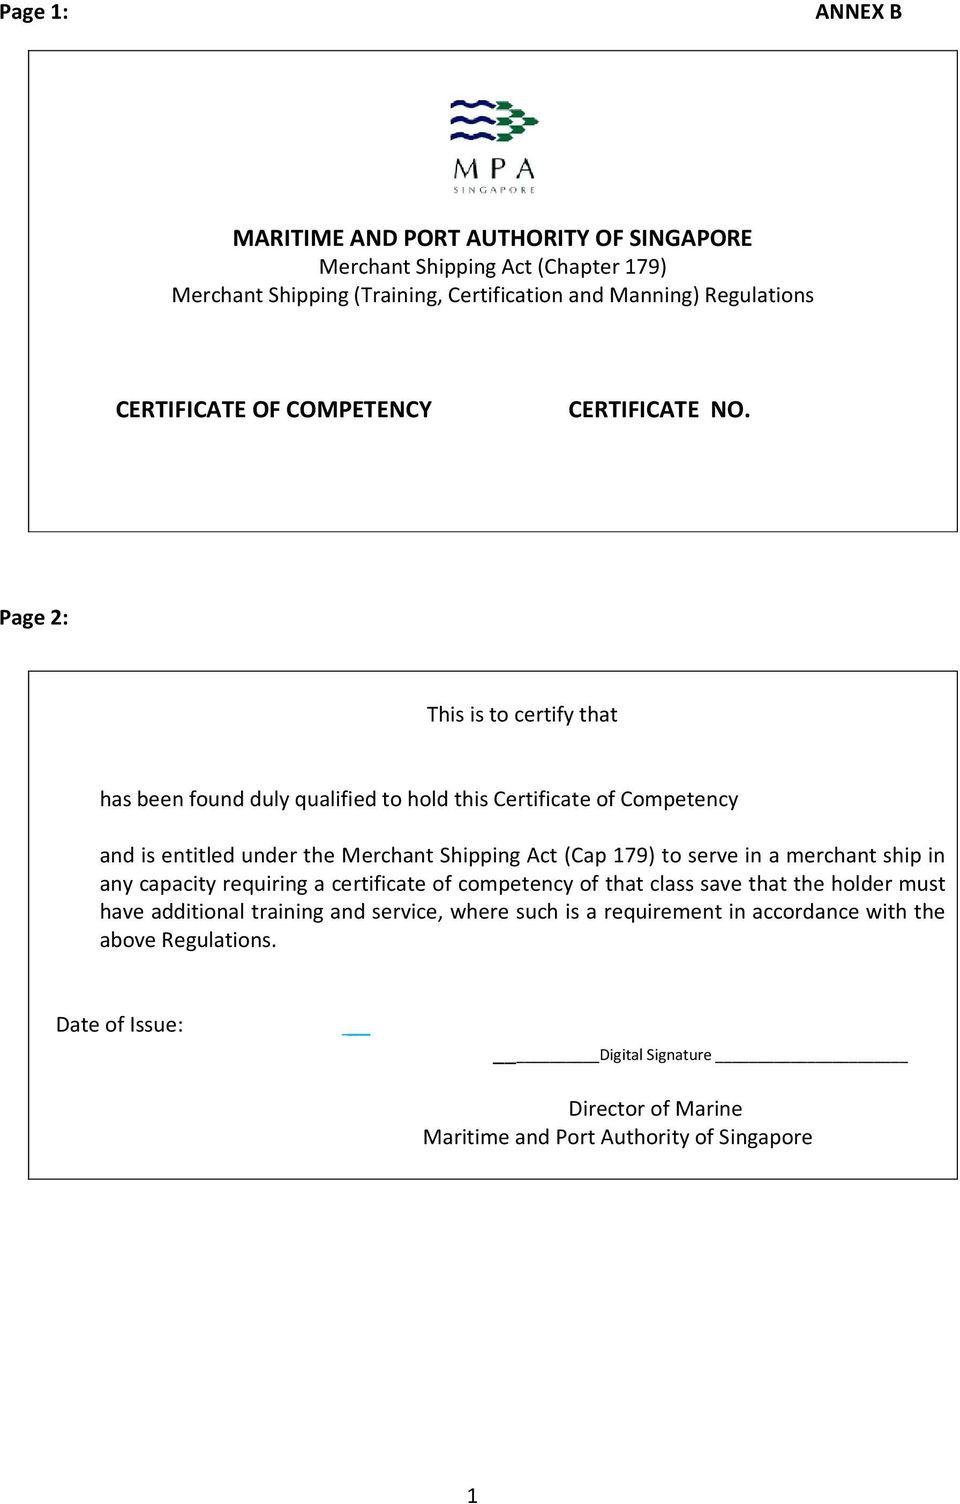 Page 2: This is to certify that has been found duly qualified to hold this Certificate of Competency and is entitled under the Merchant Shipping Act (Cap 179) to serve in